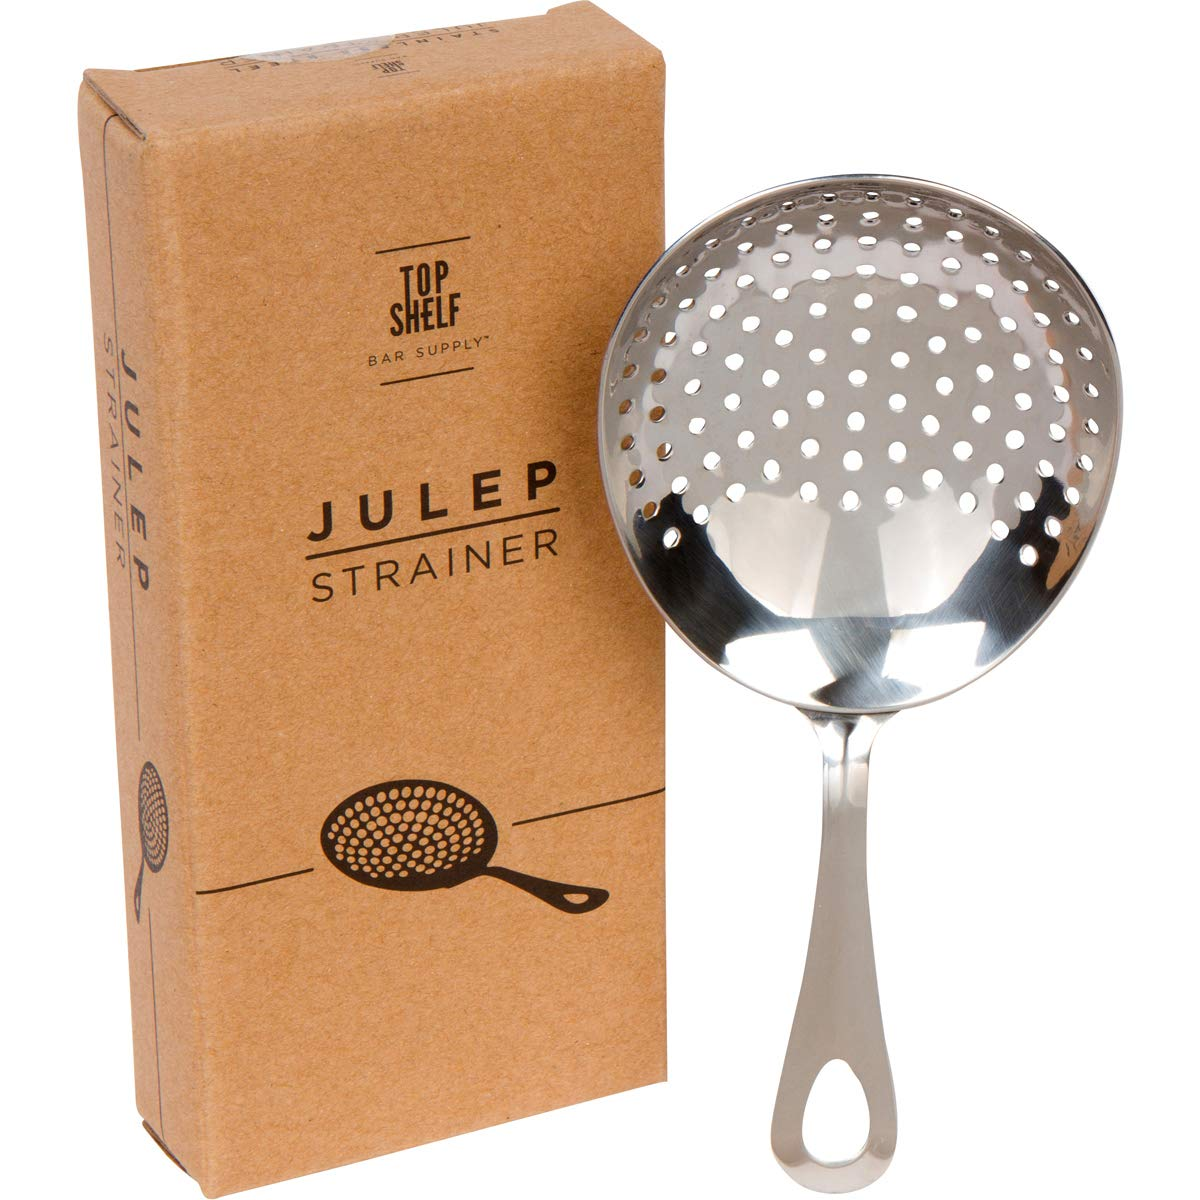 Julep Strainer: Stainless Steel SS304 Cocktail Strainer by Top Shelf Bar Supply by Top Shelf Bar Supply